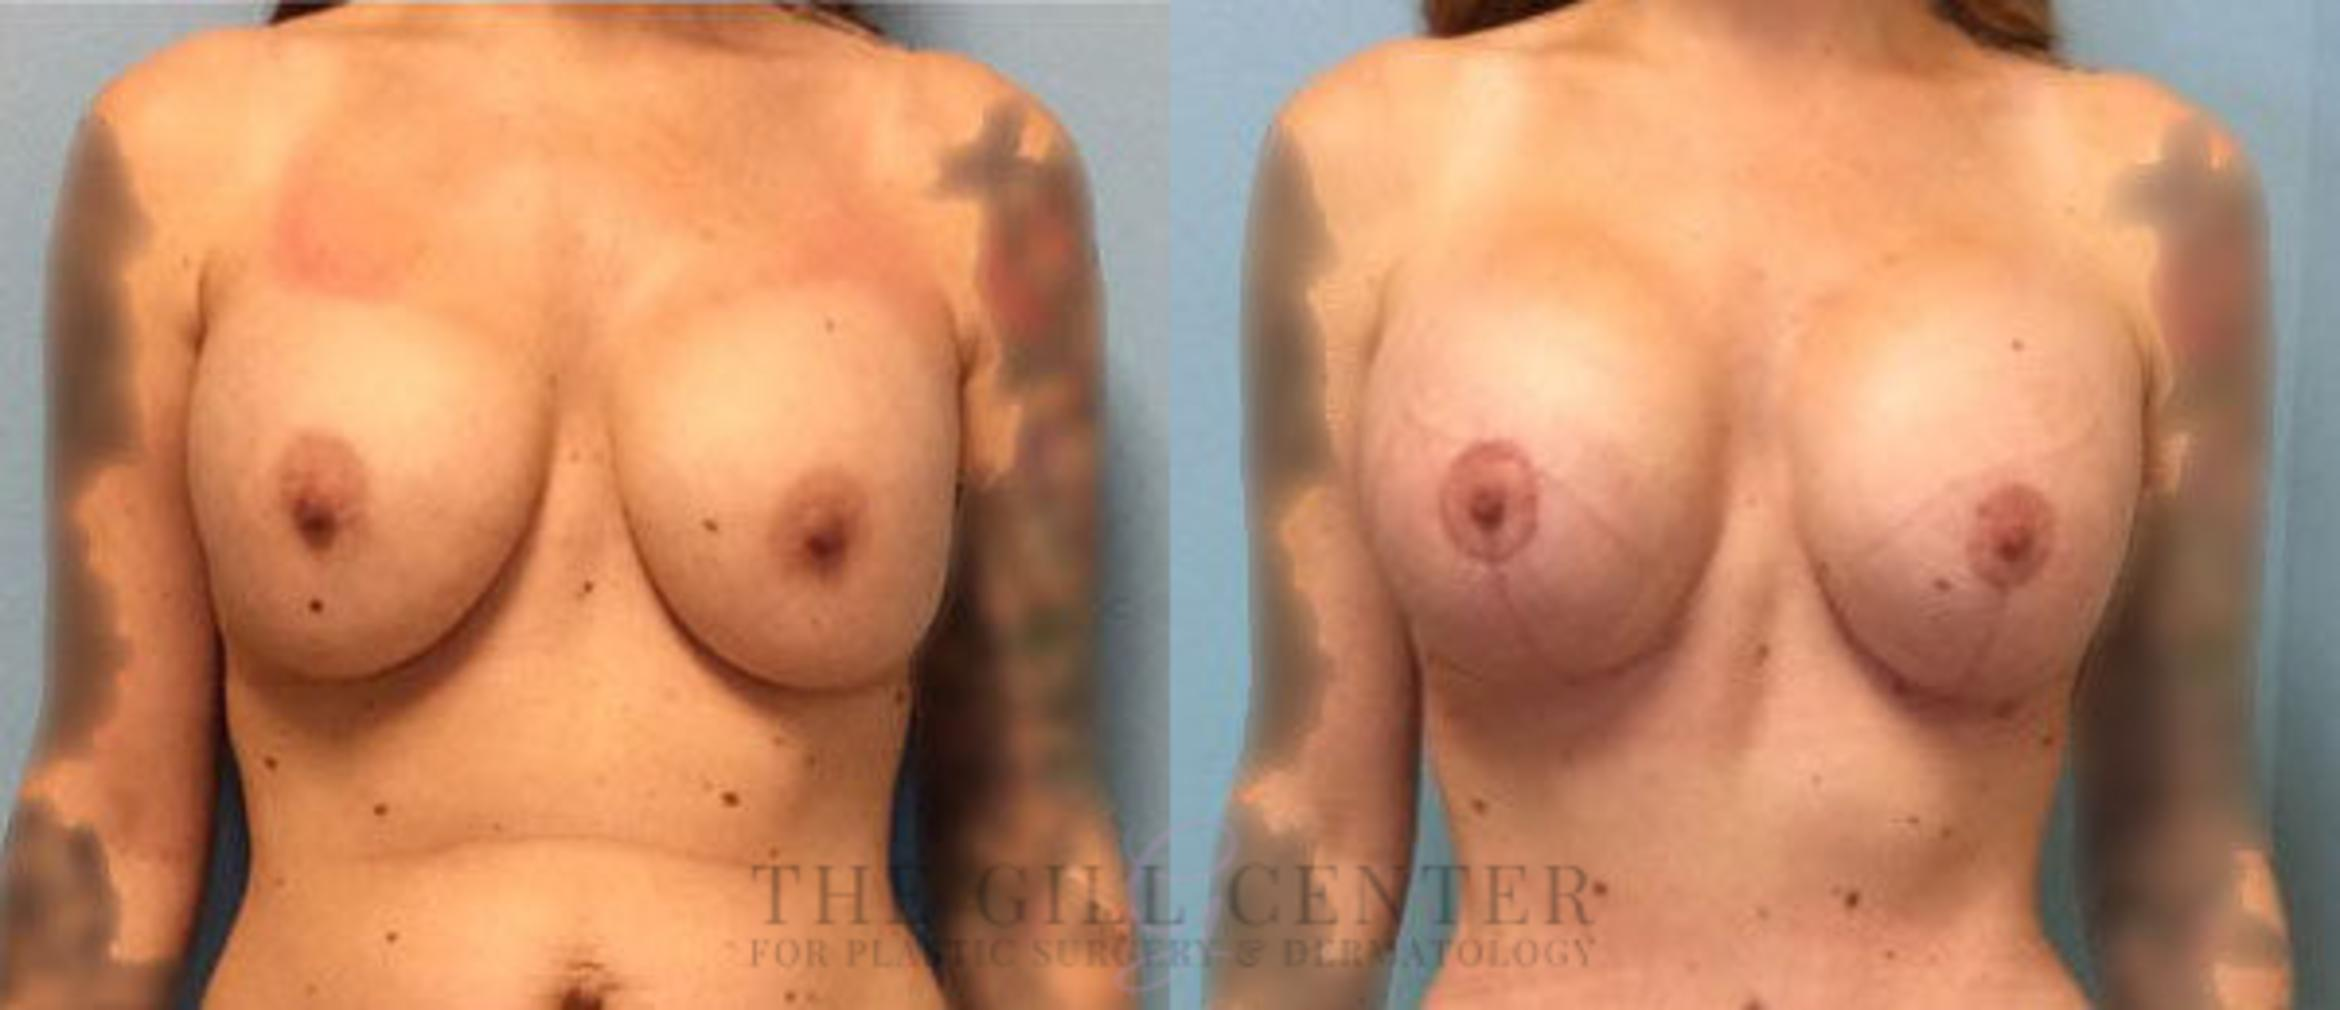 Breast Revision Case 376 Before & After Front | Shenandoah, TX | The Gill Center for Plastic Surgery and Dermatology